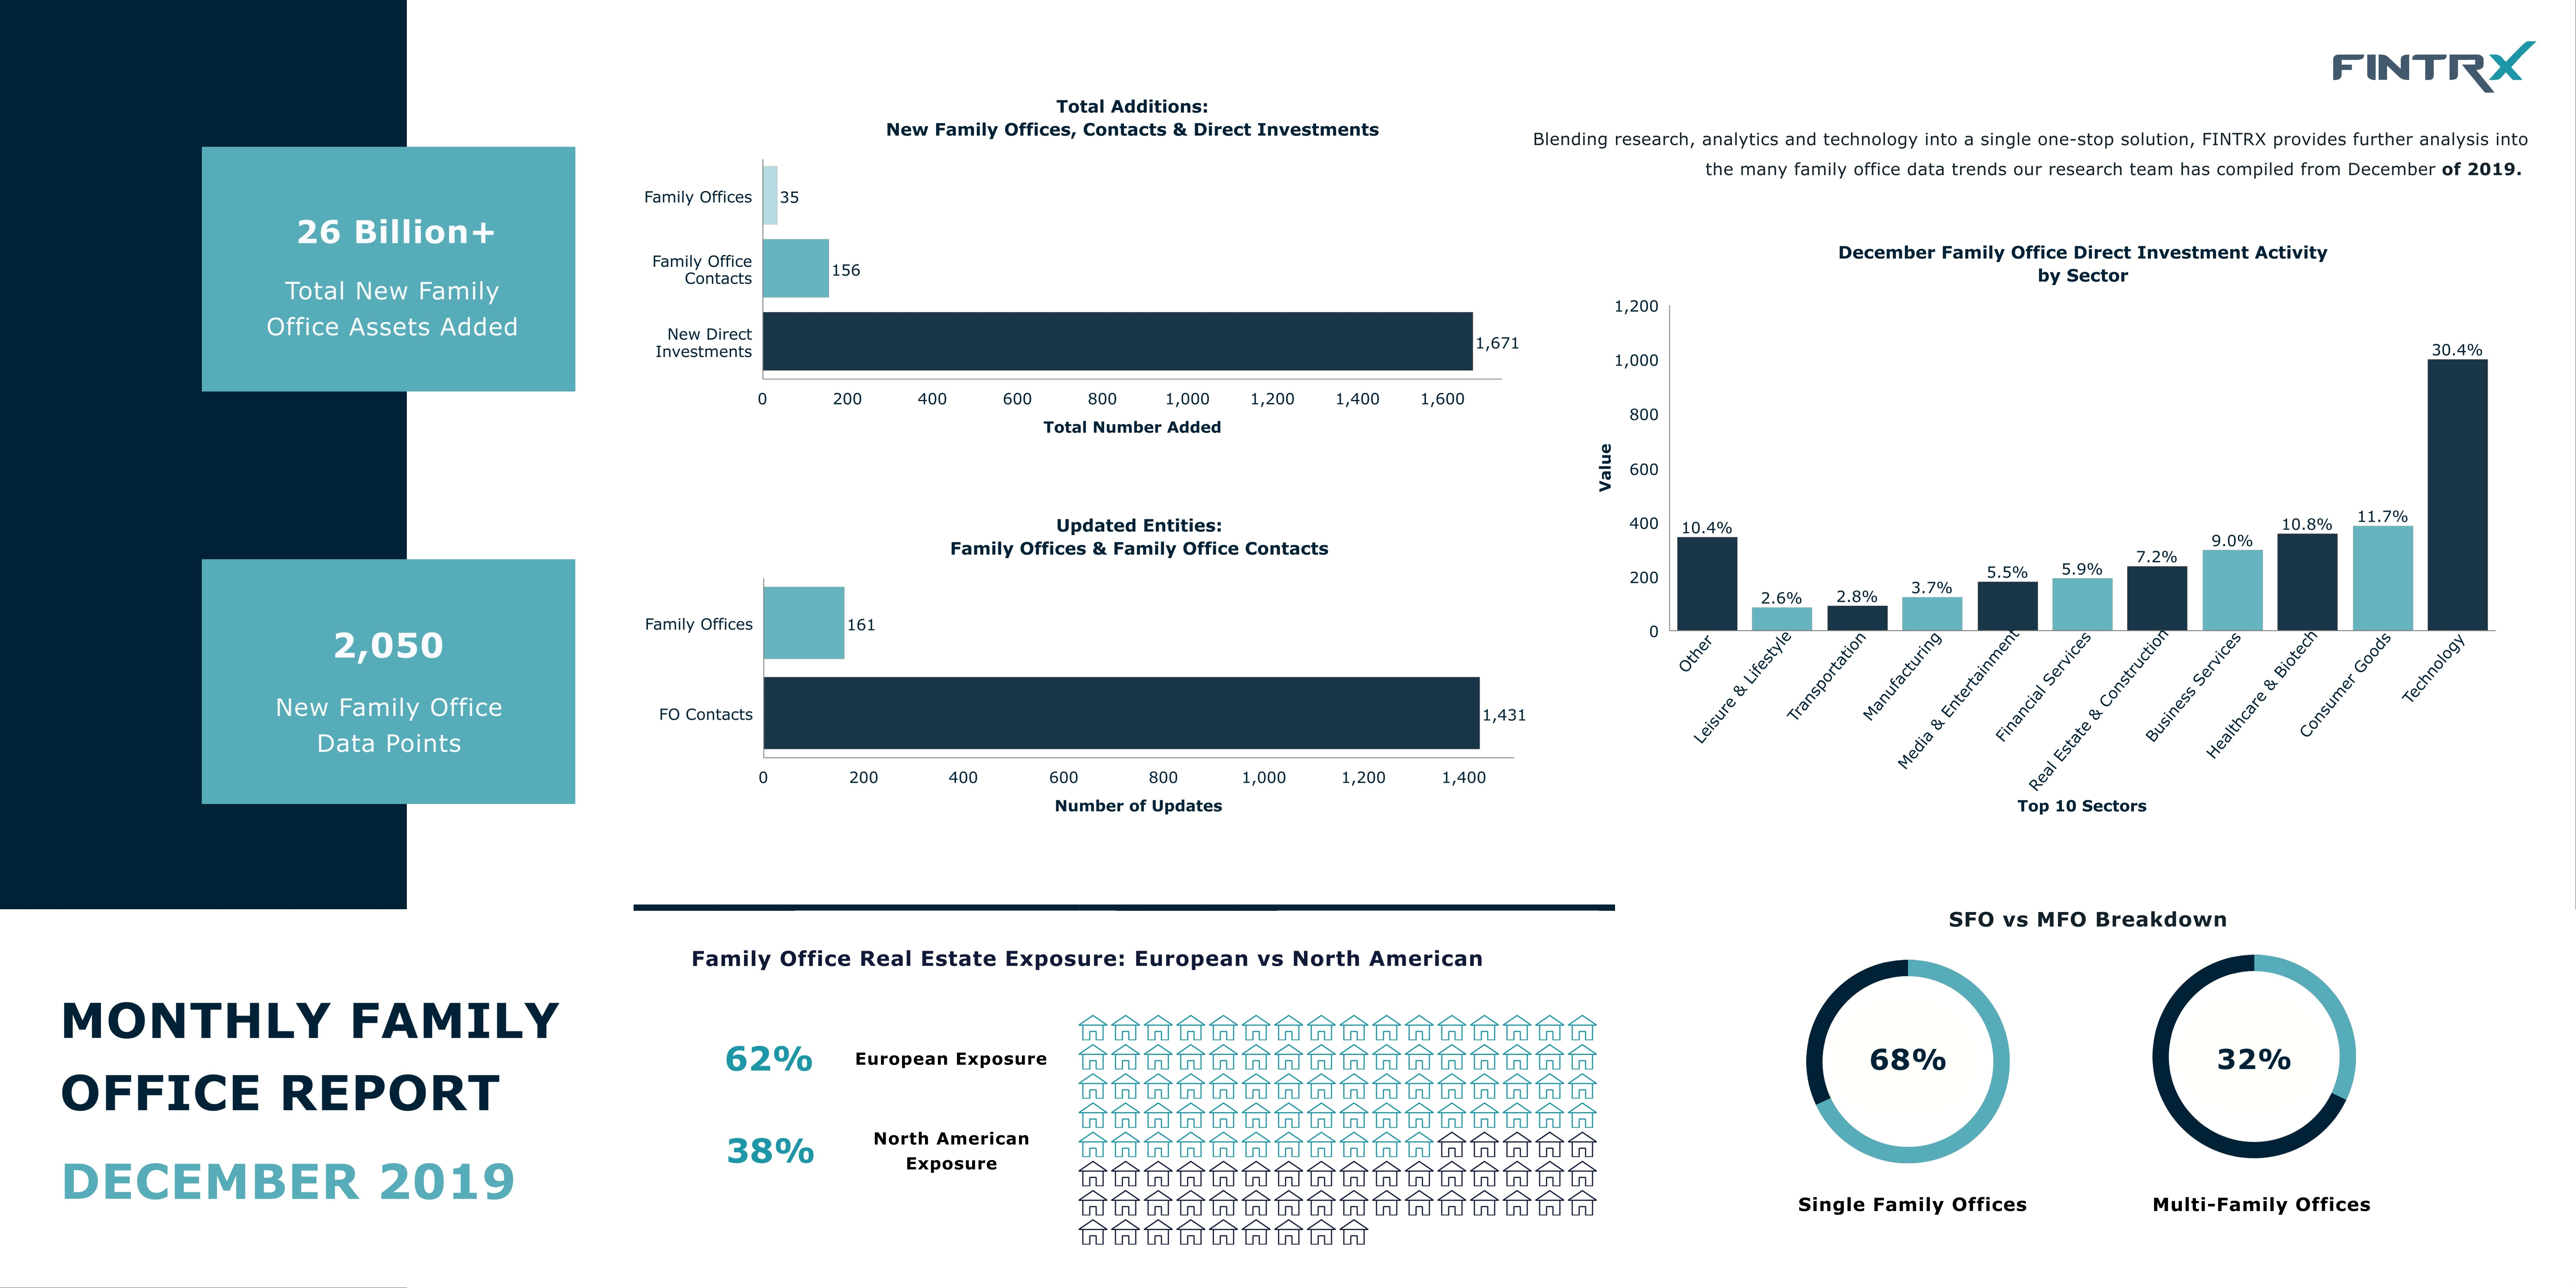 MONTHLY-FAMILY-OFFICE-REPORT